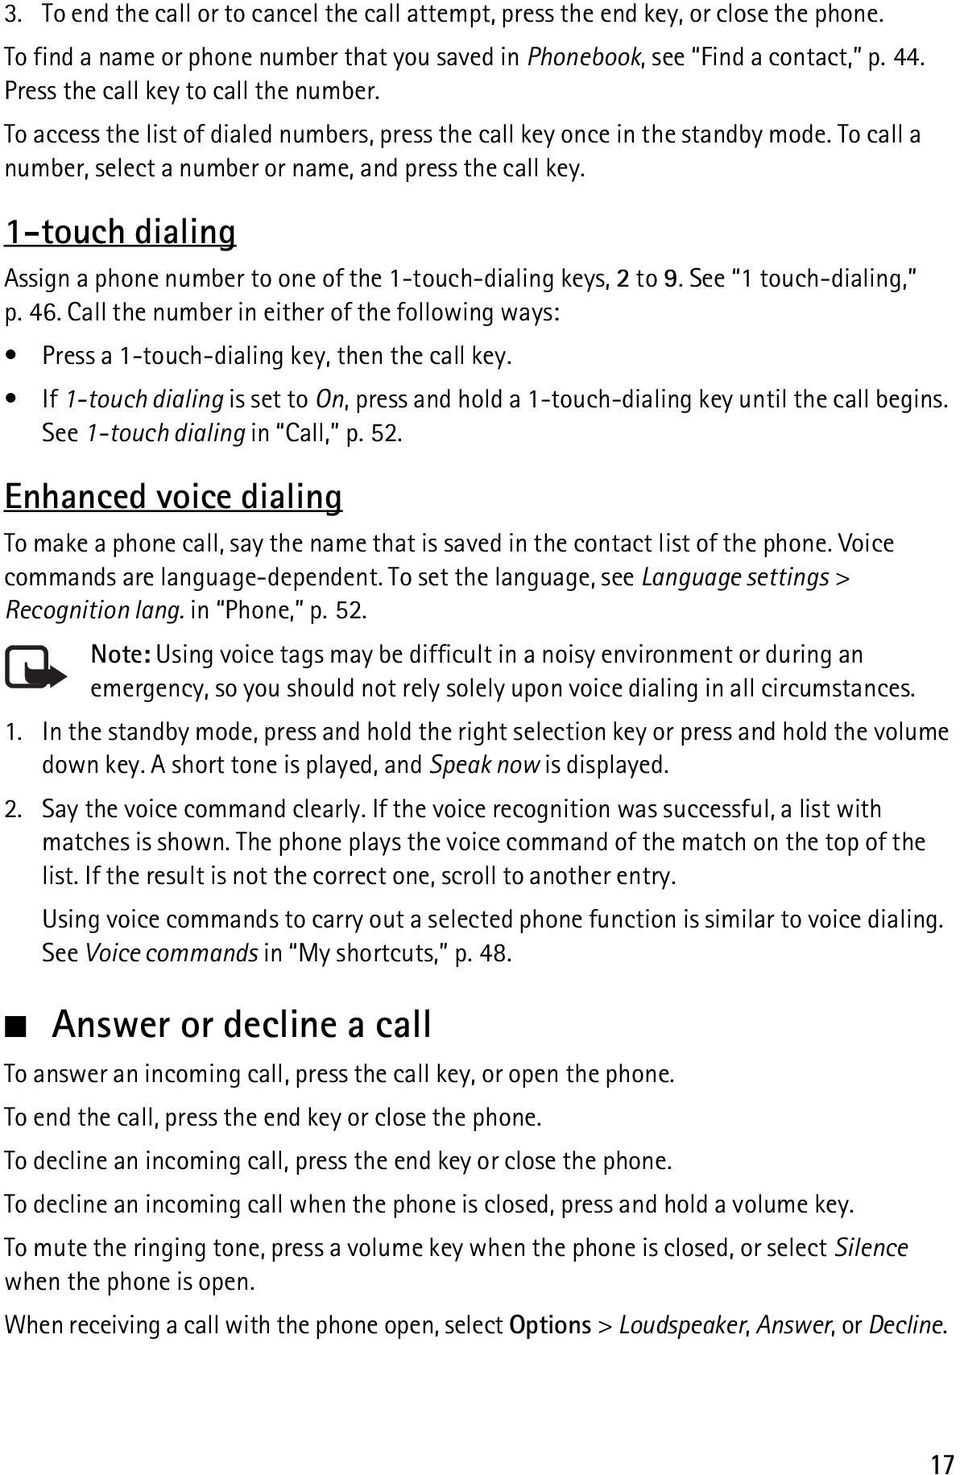 1-touch dialing Assign a phone number to one of the 1-touch-dialing keys, 2 to 9. See 1 touch-dialing, p. 46.